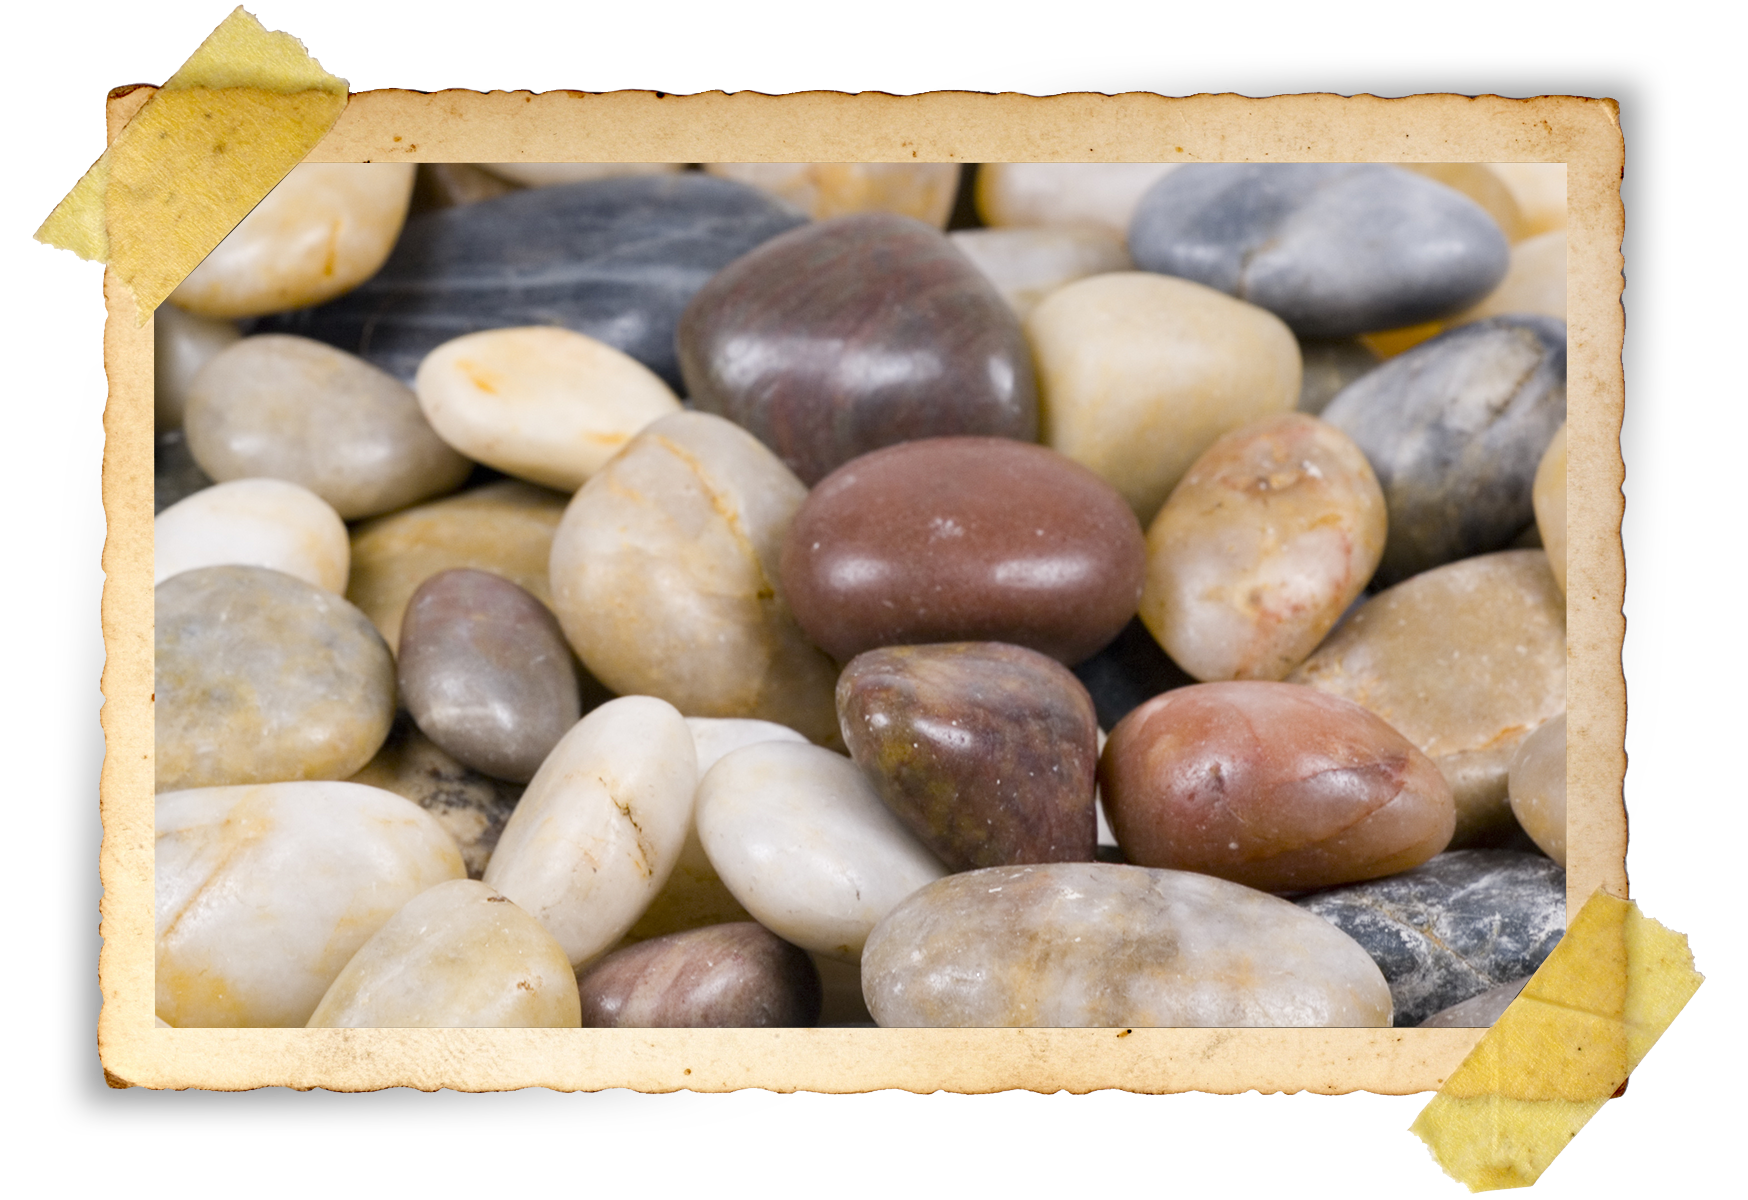 COLLECT ROCKS FROM DIFFERENT LOCATIONS